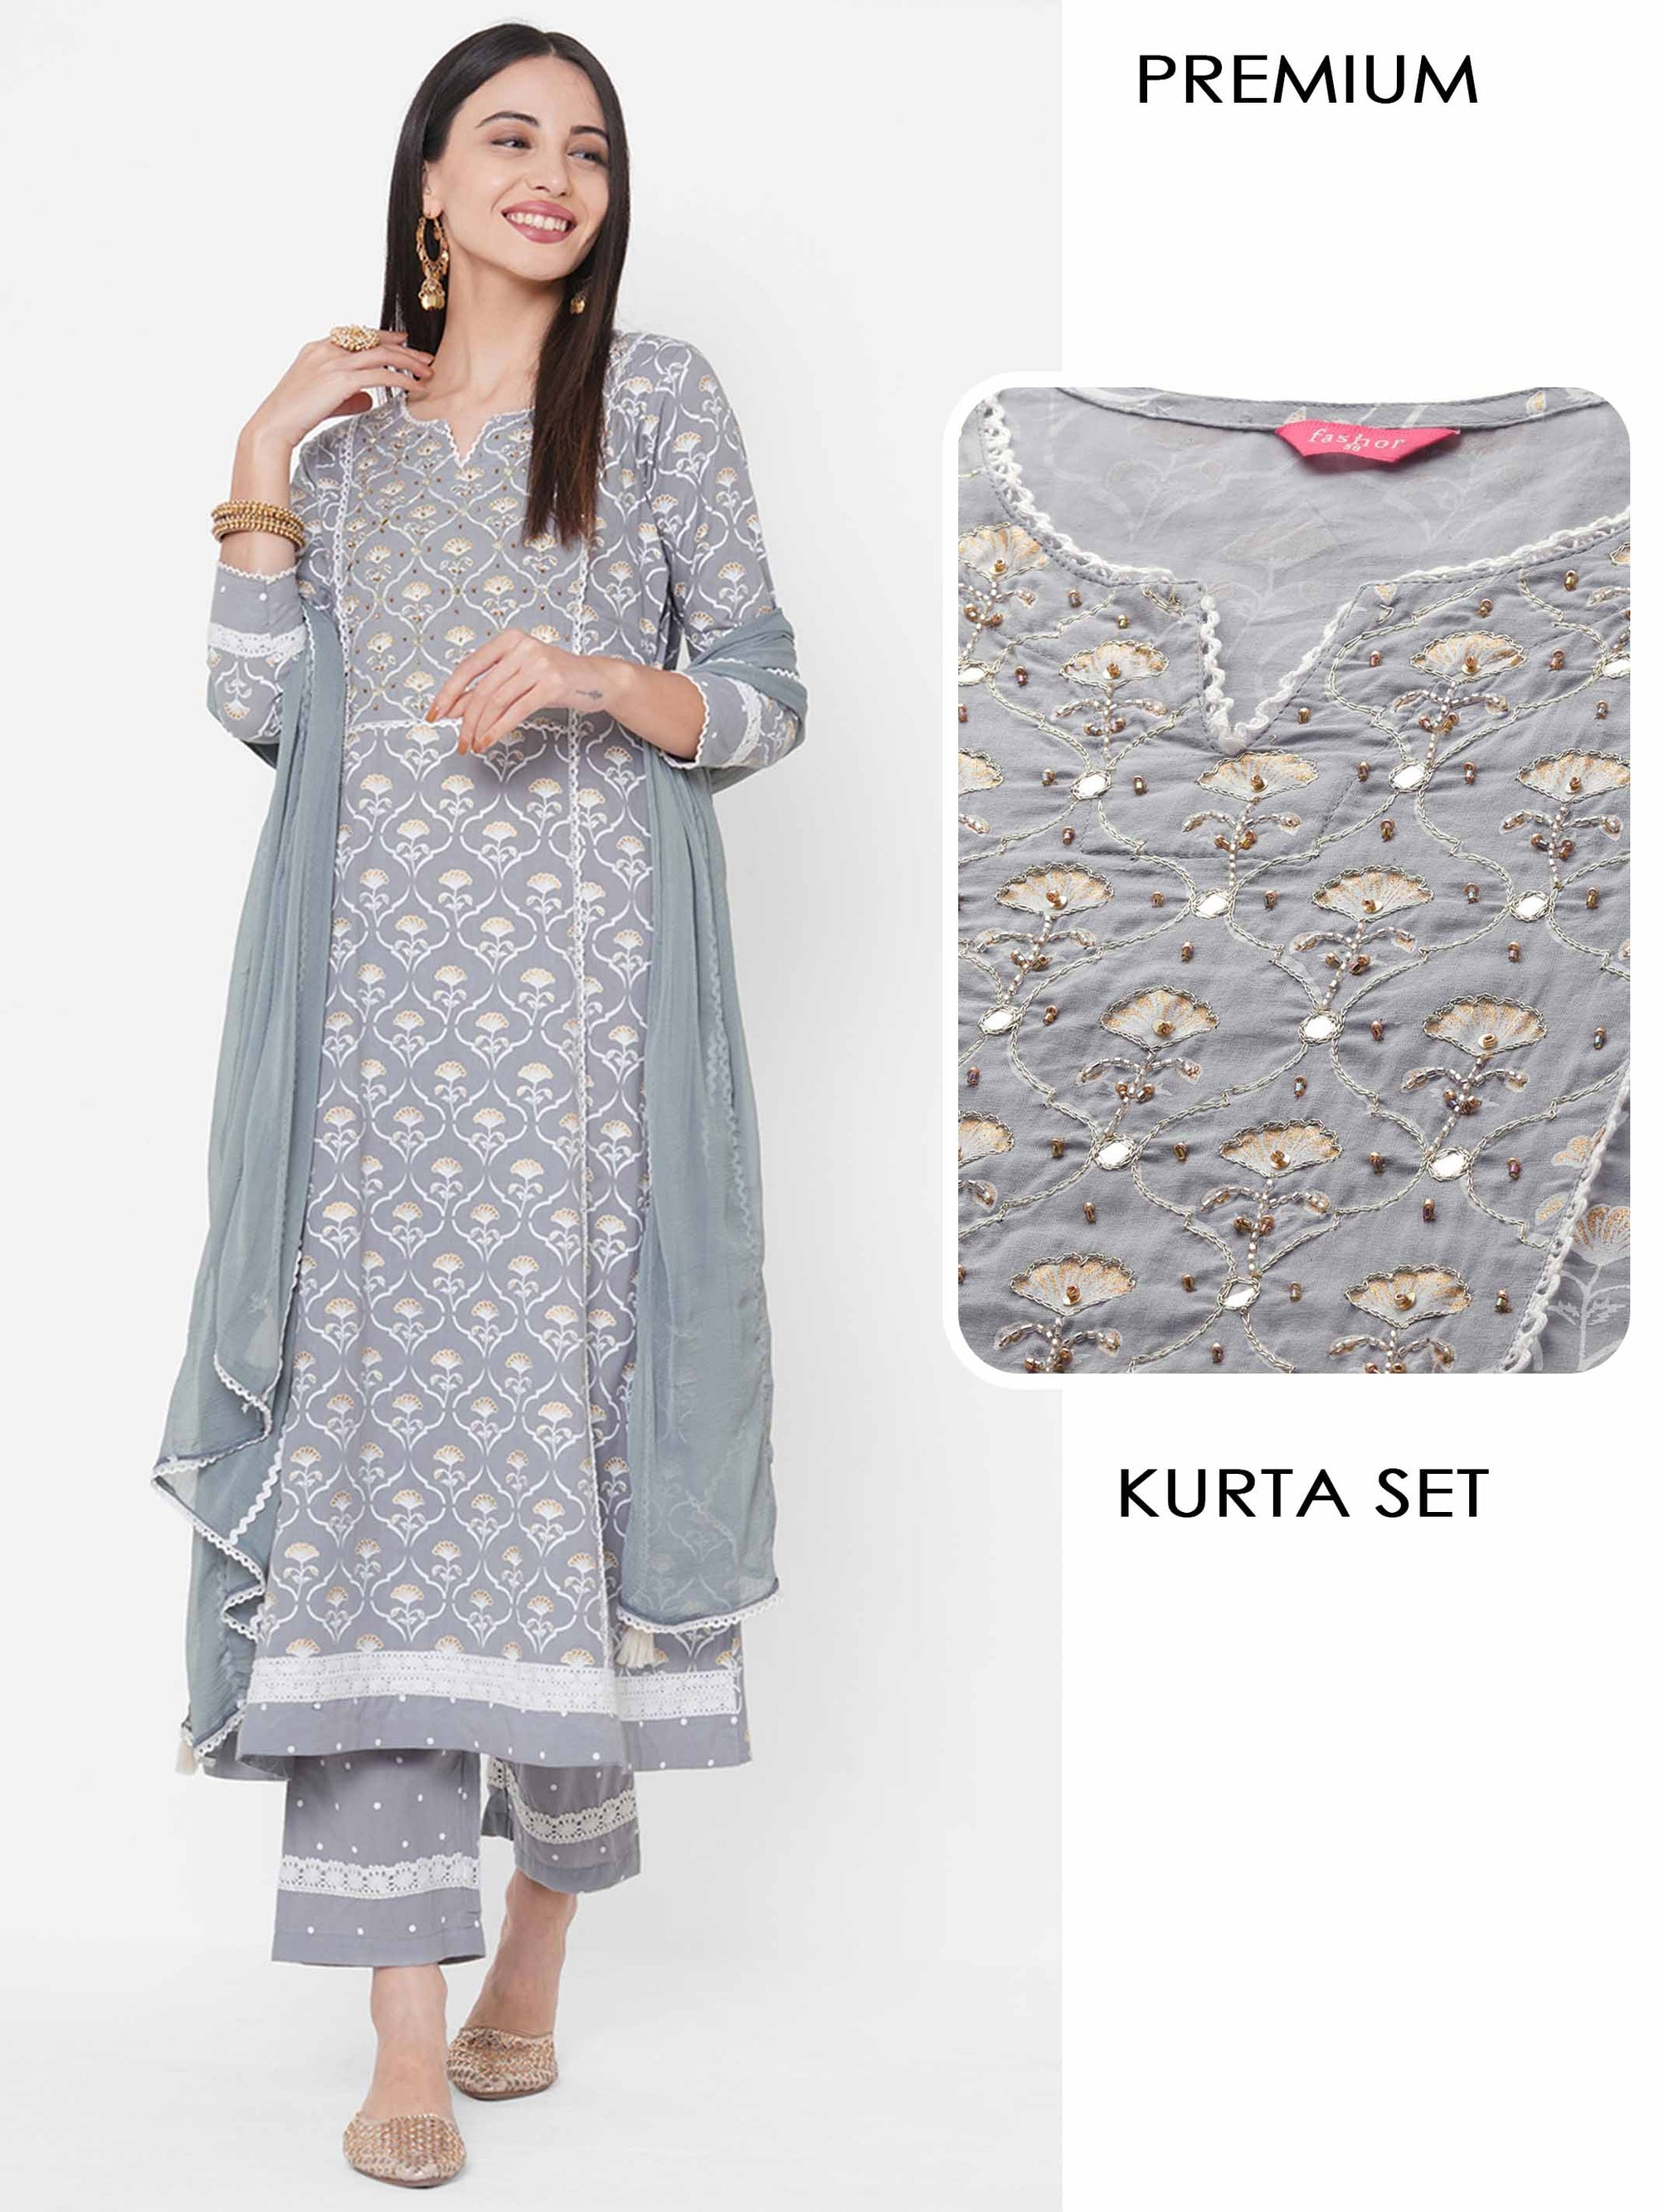 Mix Printed & Embroidered Kurta with Polka Dot Pant & Matching Dupatta – Grey